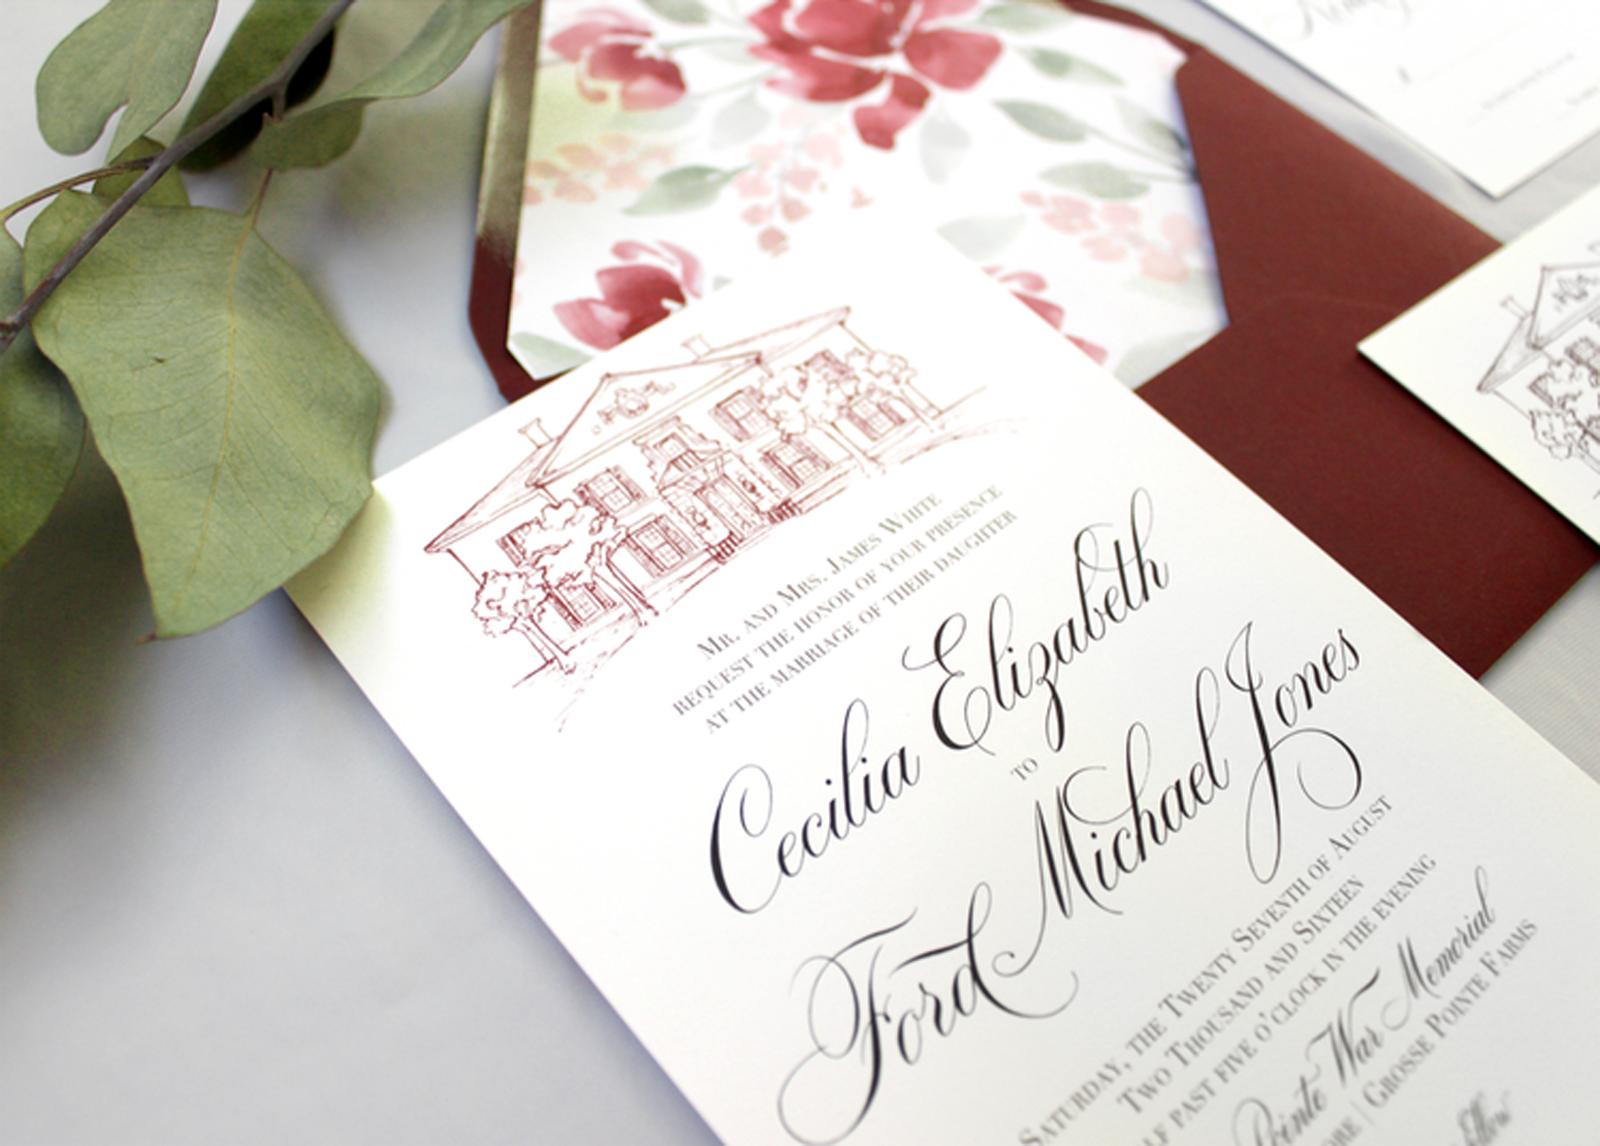 Grosse Pointe War Memorial wedding inspiration.  Beautiful, historic wedding invitations featuring a venue illustration of the War Memorial of Grosse Pointe Michigan.  Such a beautiful and classy way to set your invitations apart and show off your unique venue and style! #michiganwedding #grossepointwarmemorial #grossepointewedding #weddinginvitations #fineartwedding